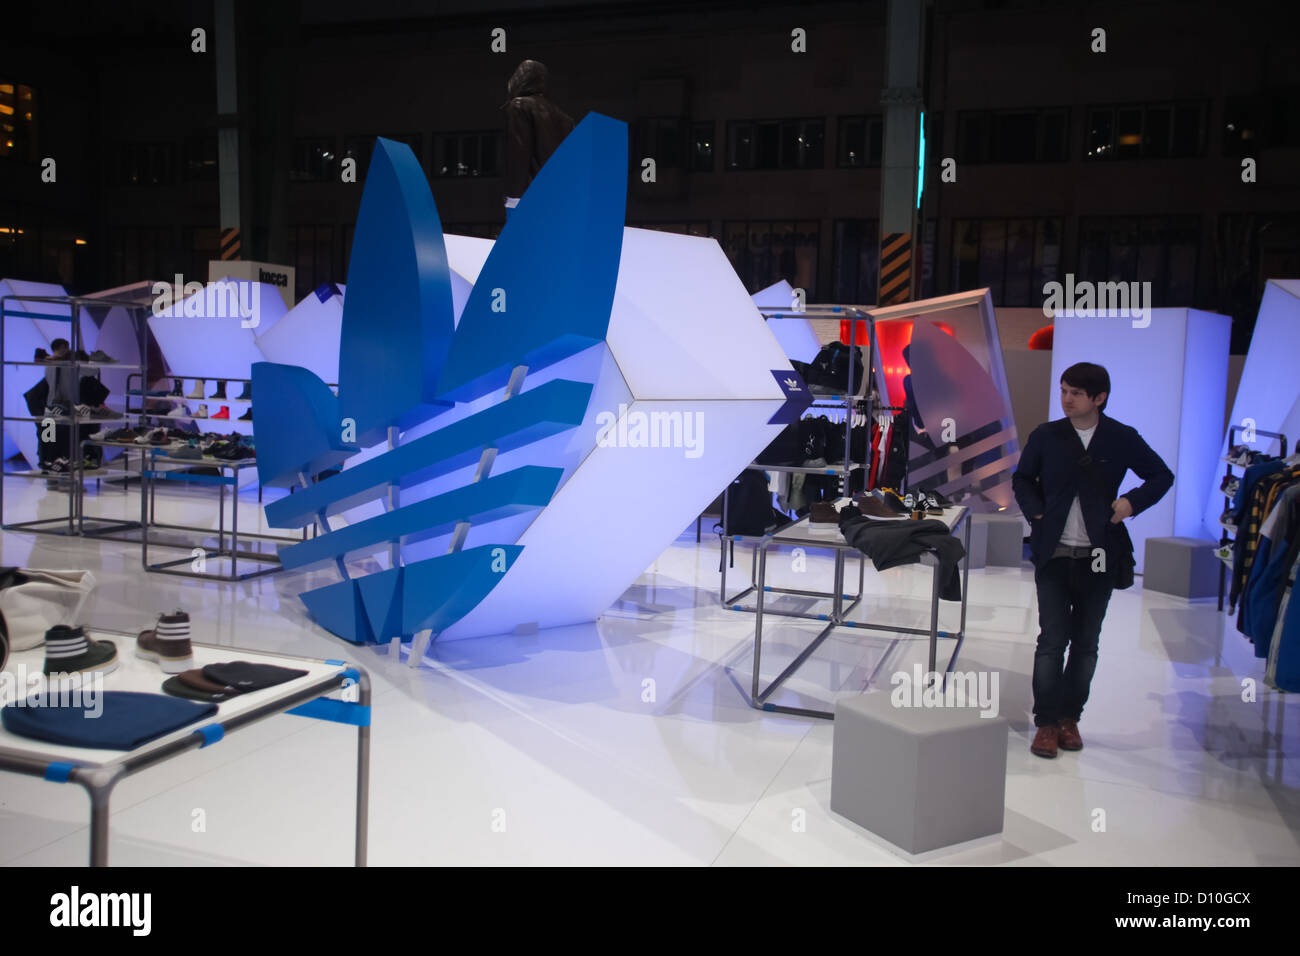 Elasticidad collar Faceta  BERLIN - JANUARY 21: Adidas stand at Bread & Butter fair on January Stock  Photo - Alamy